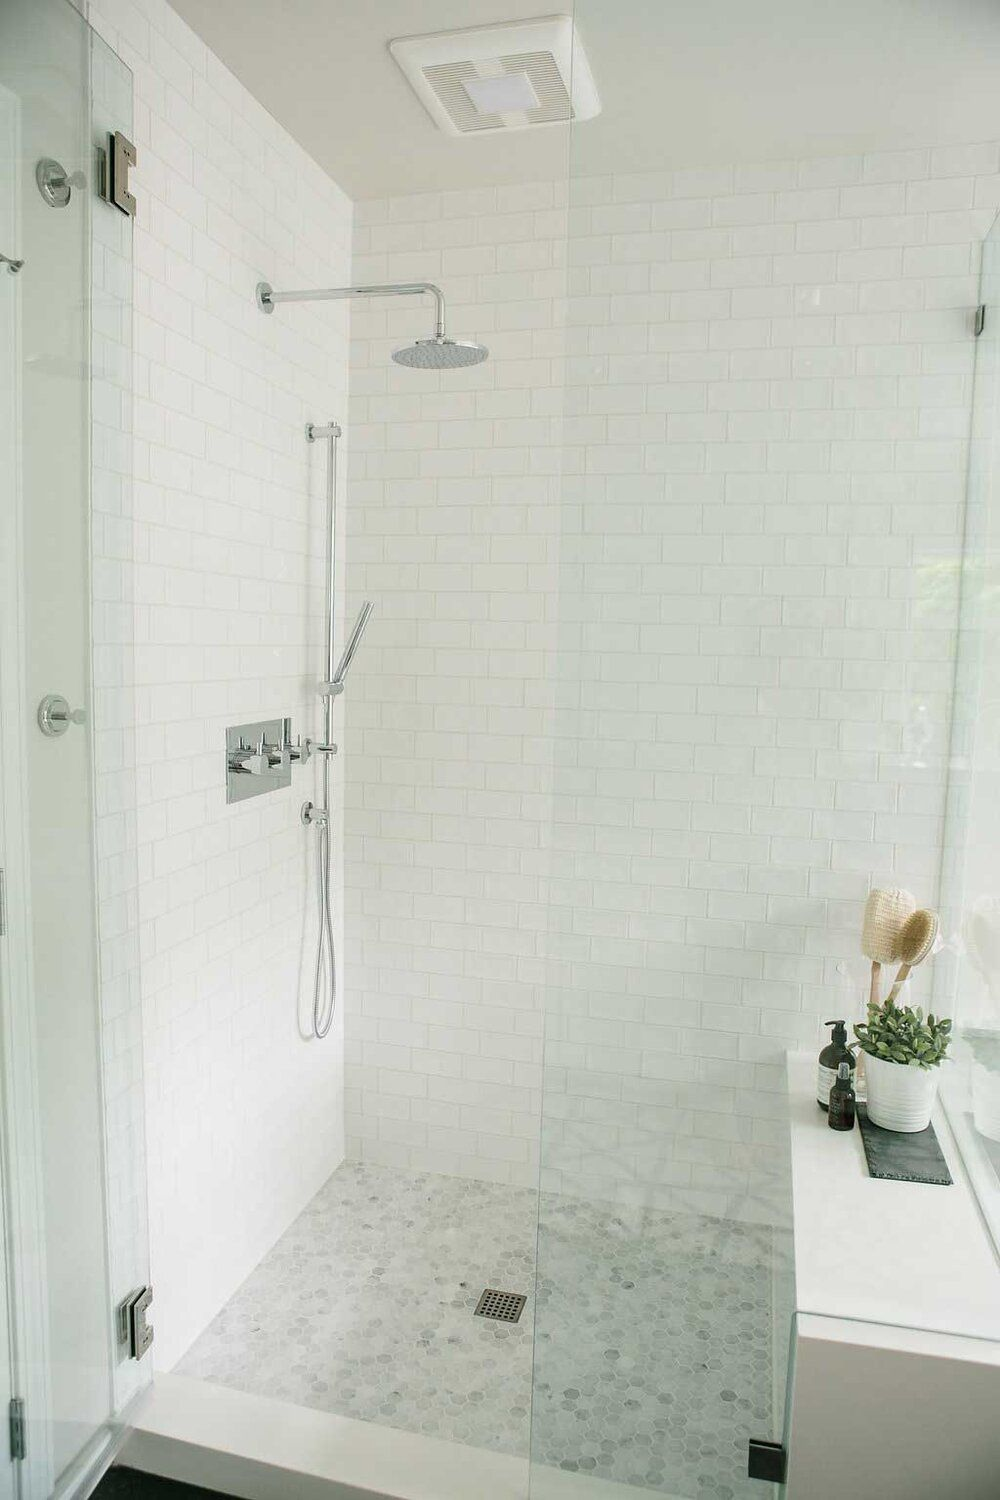 5 Major Design Considerations For Your Next Master Bathroom Remodel In 2020 Shower Niche Bathroom Remodel Master Bathrooms Remodel